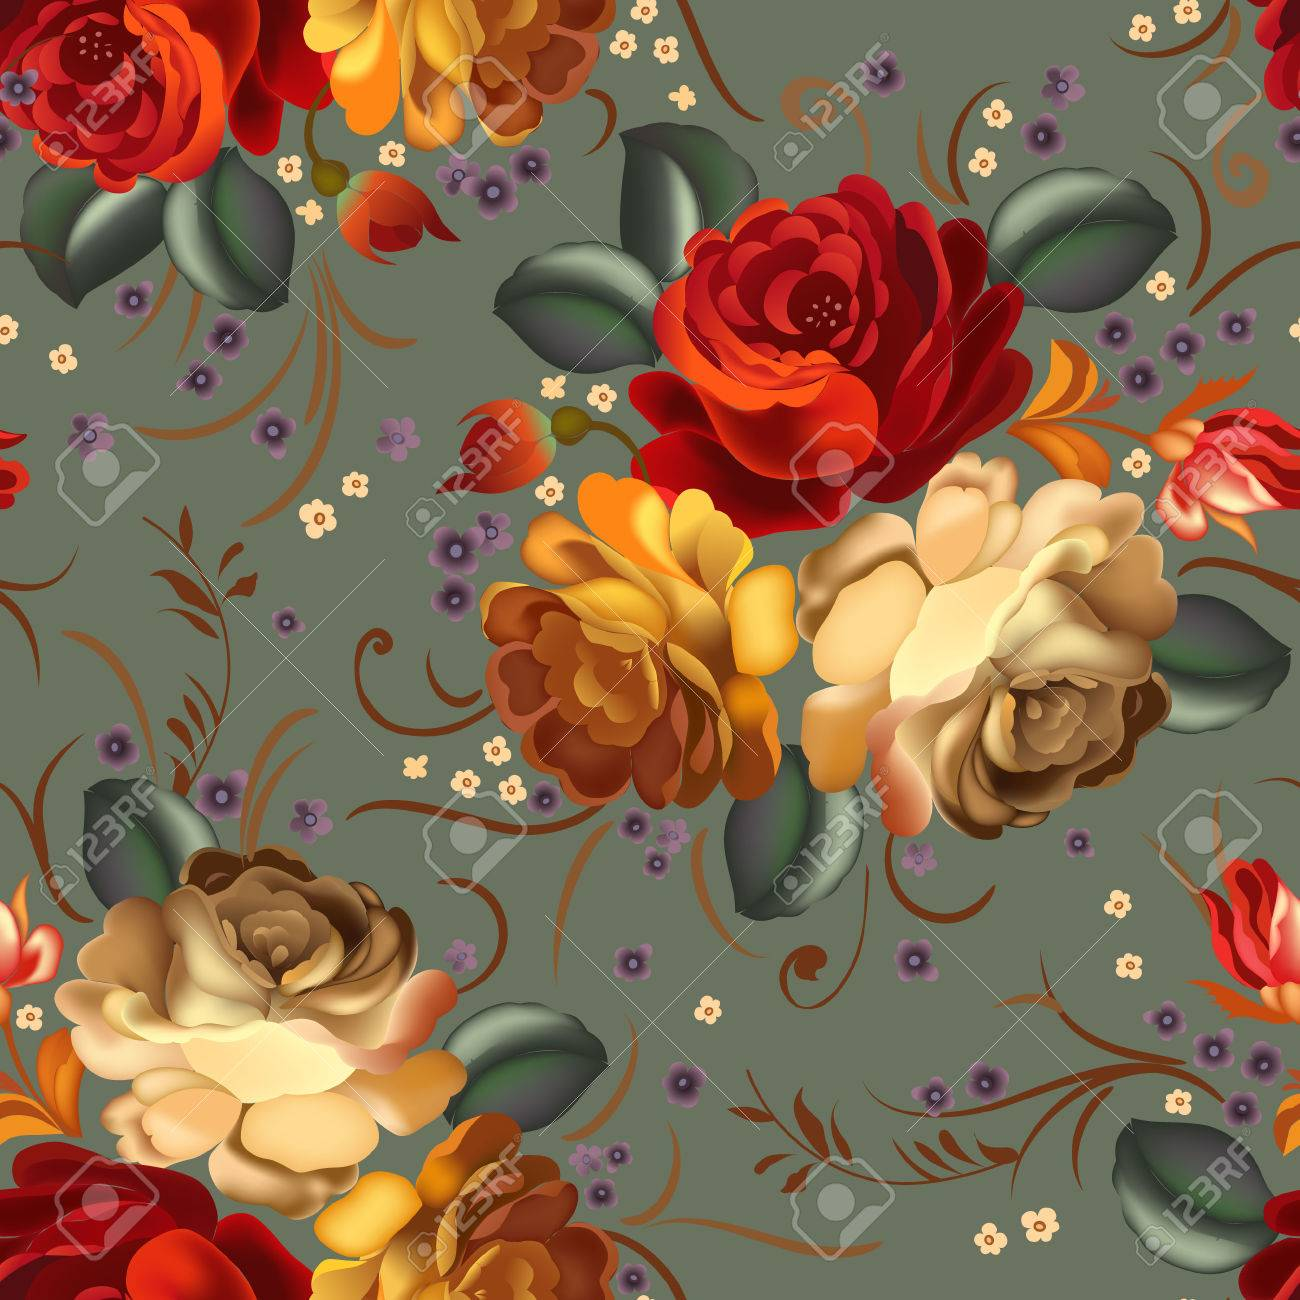 Floral textile seamless pattern with beautiful vintage flowers. Vector illustration. - 51455900